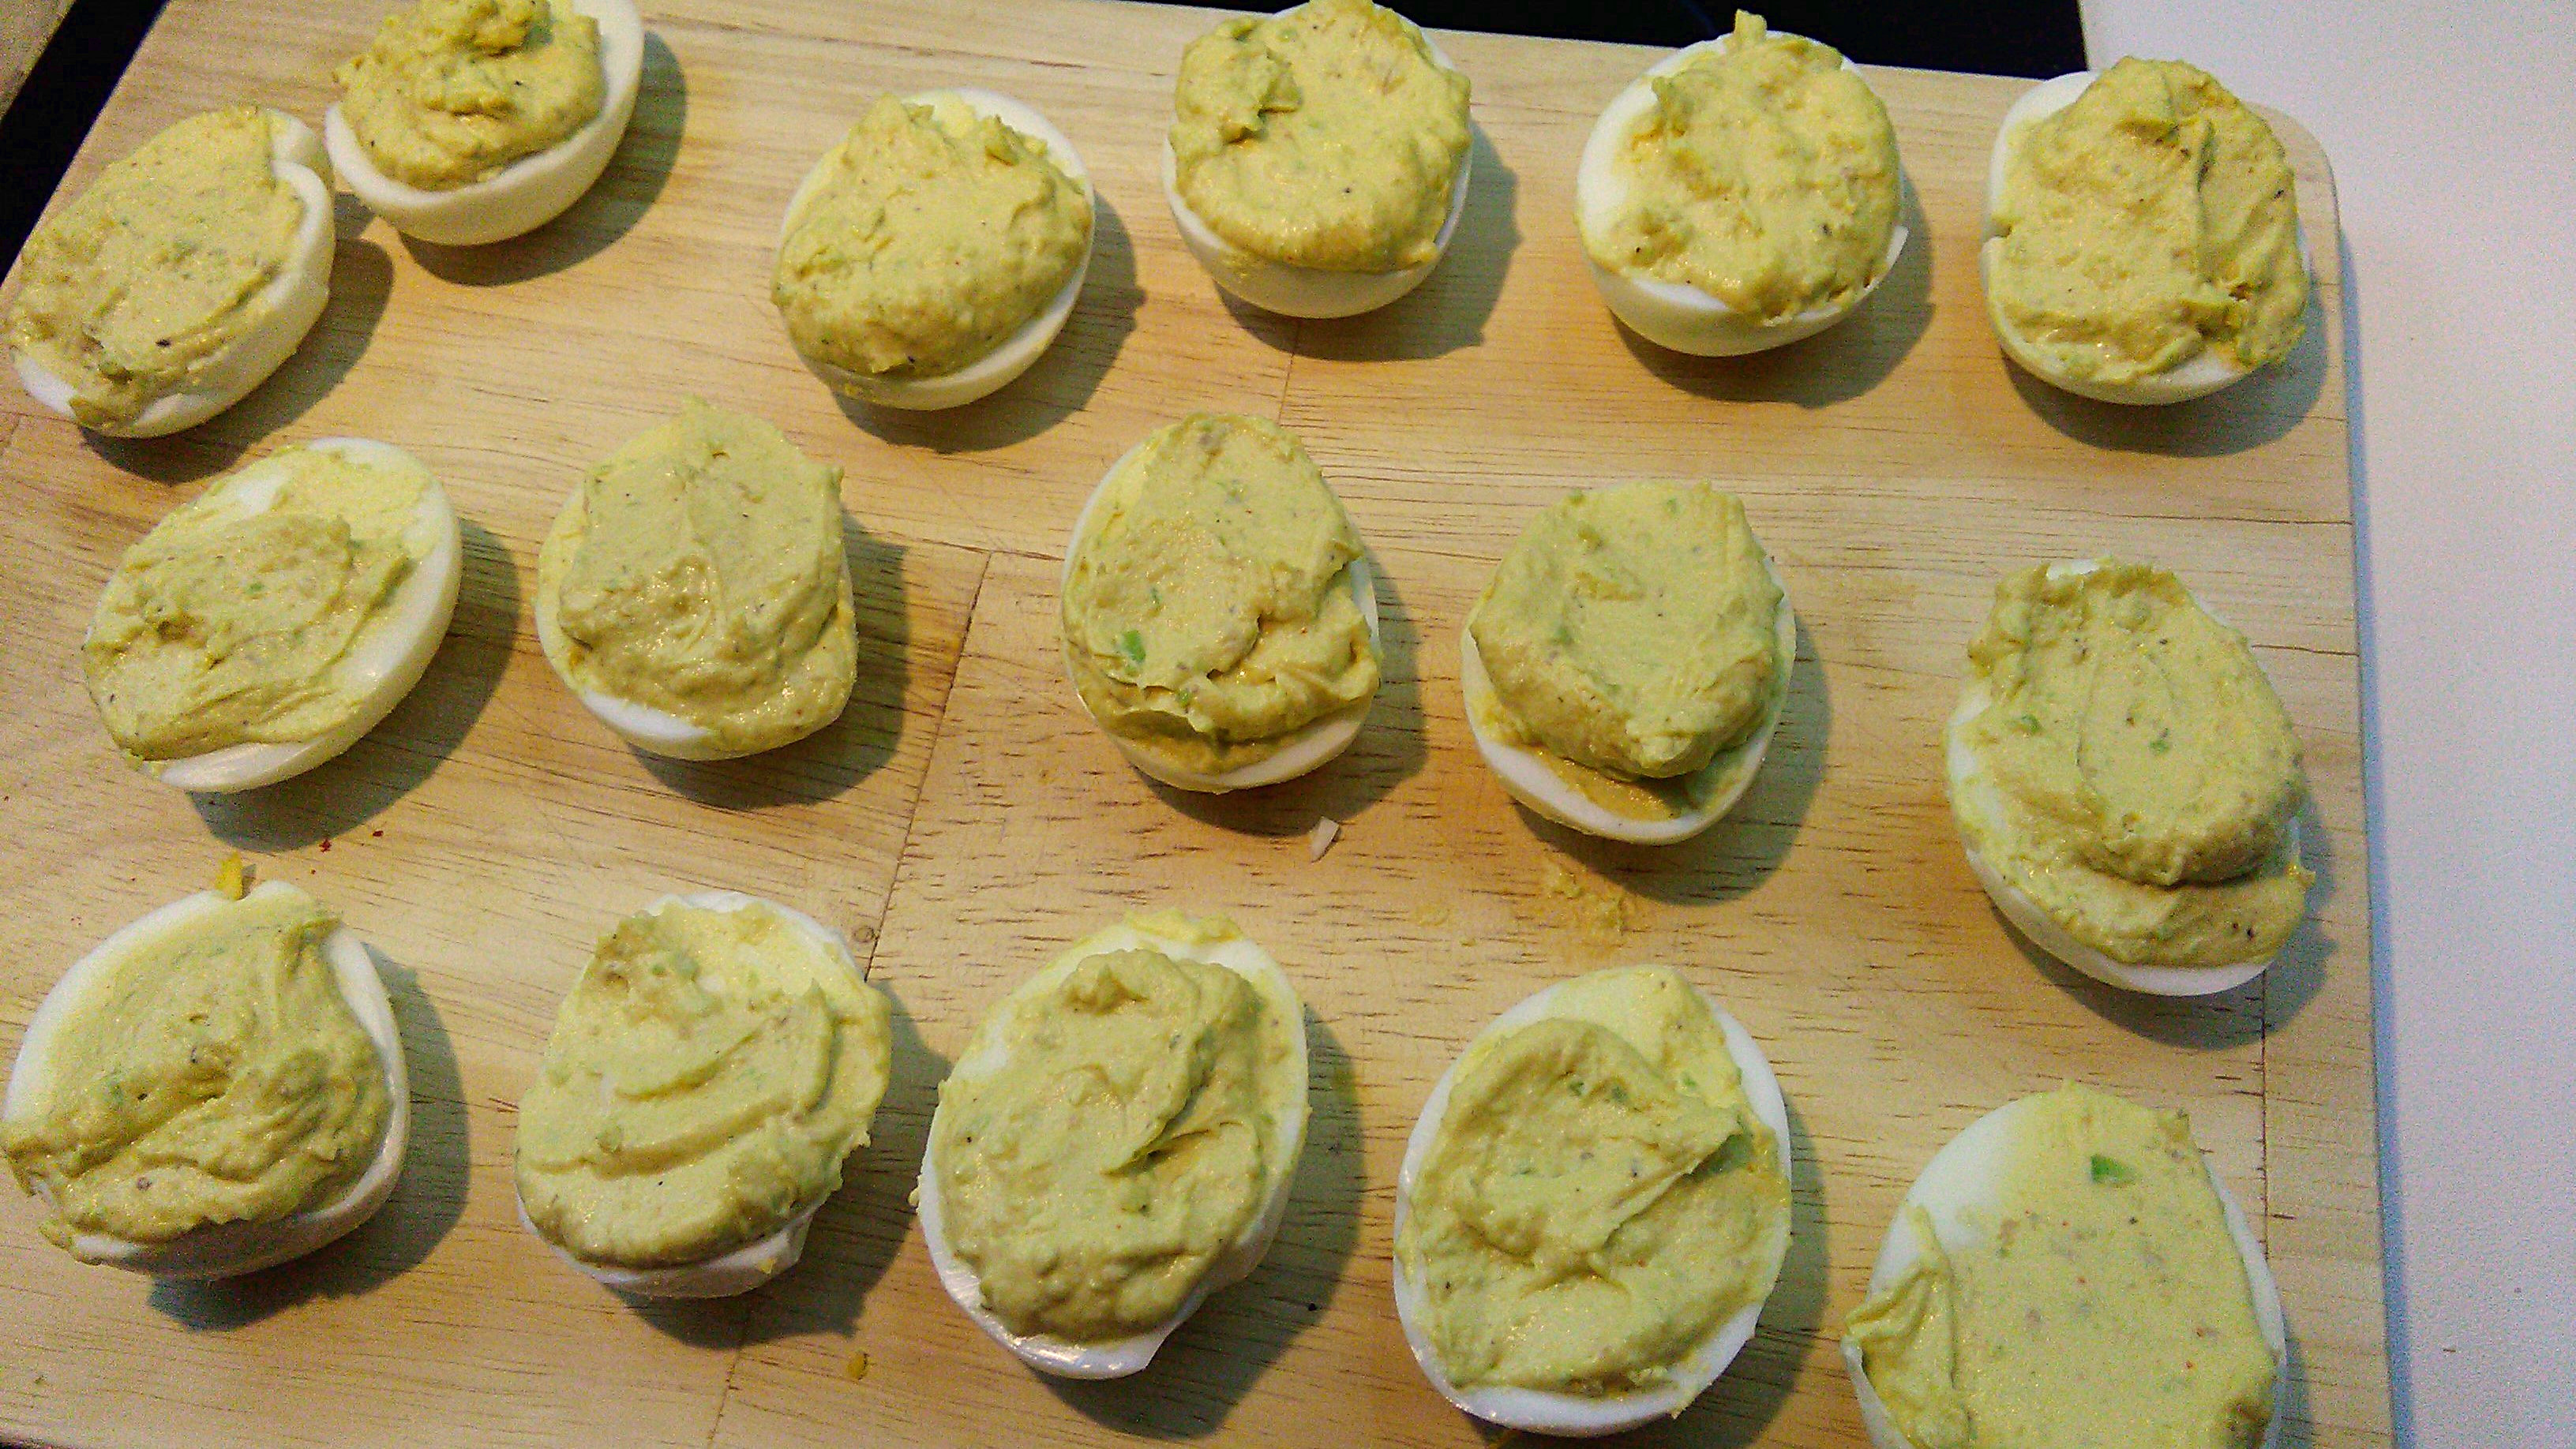 Avocado Deviled Eggs on Cutting Board